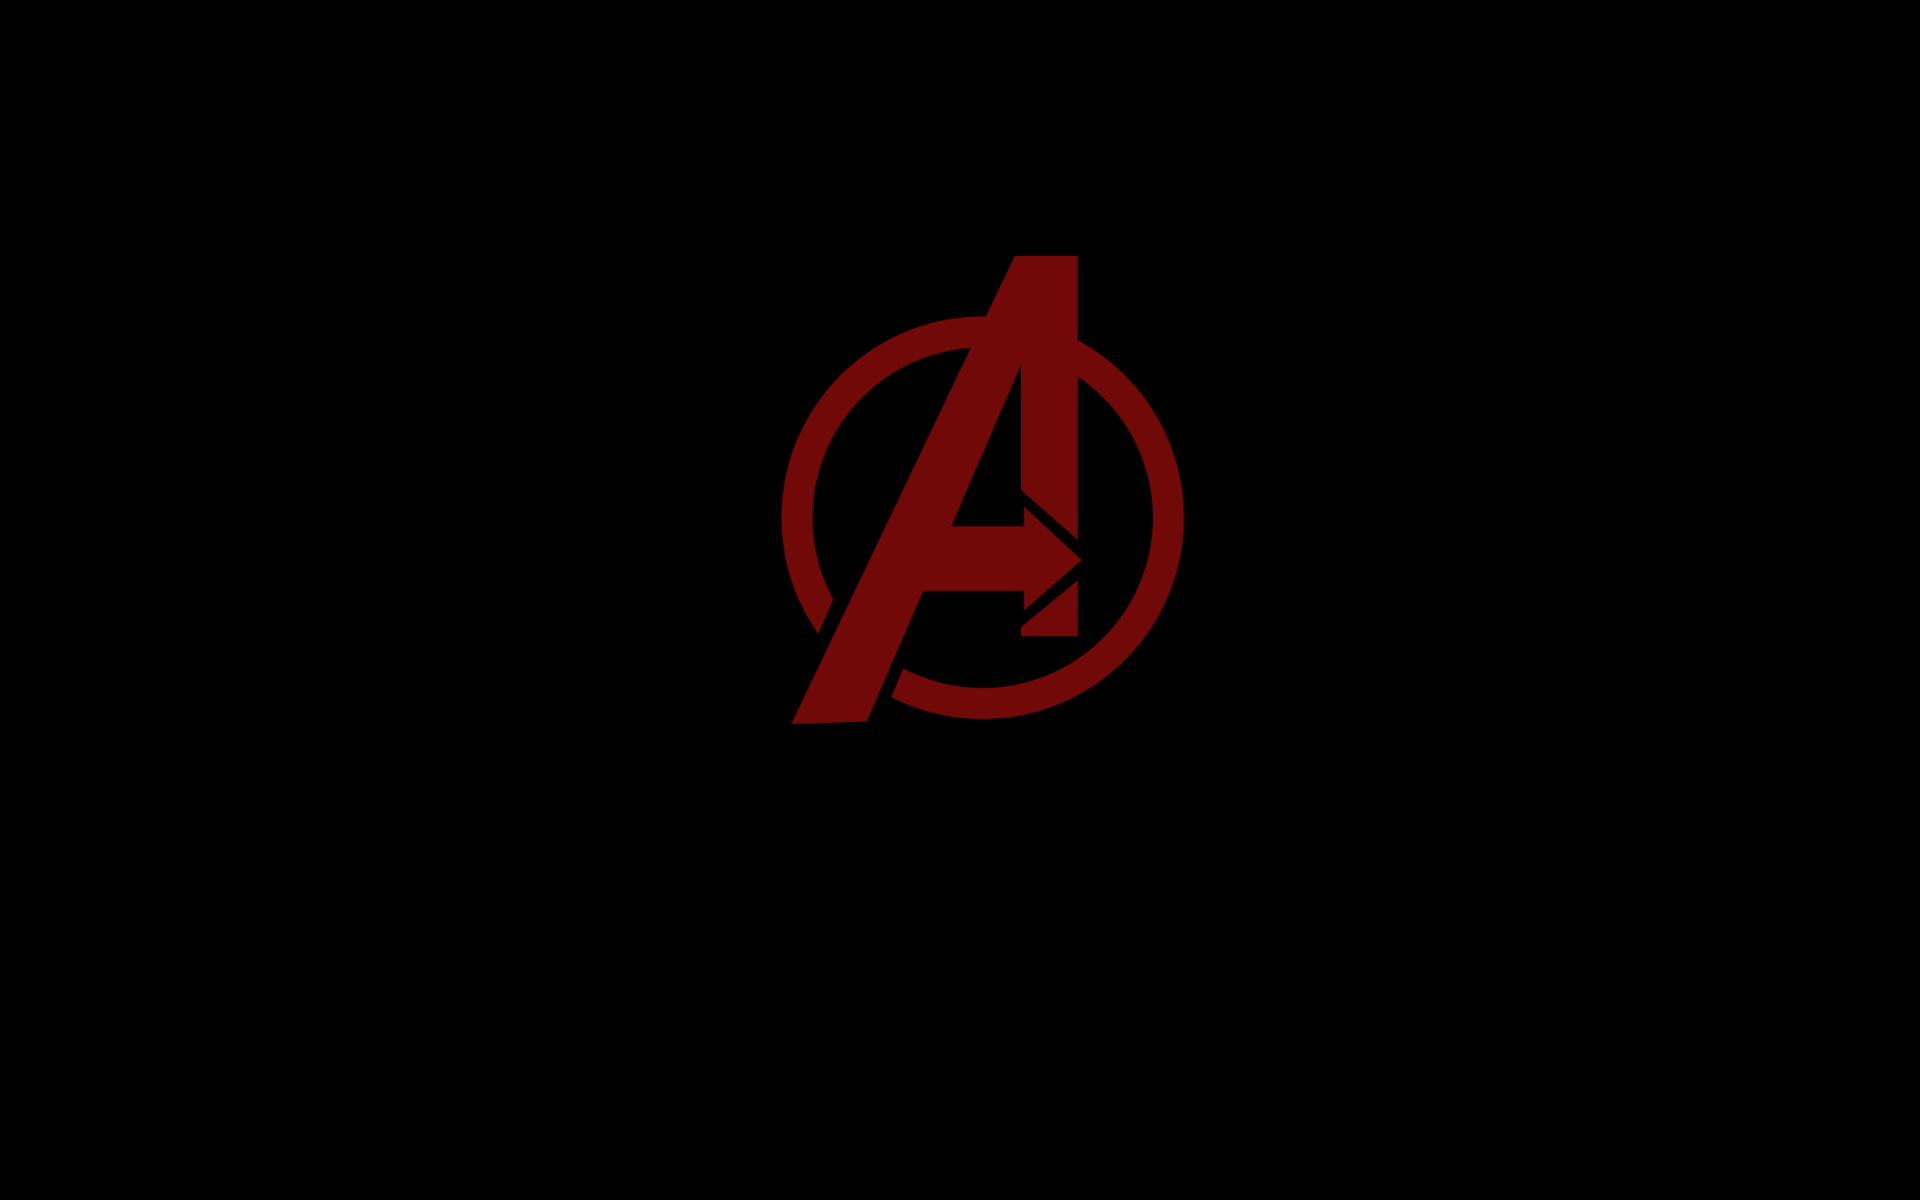 Logo Avengers Wallpapers  PixelsTalkNet